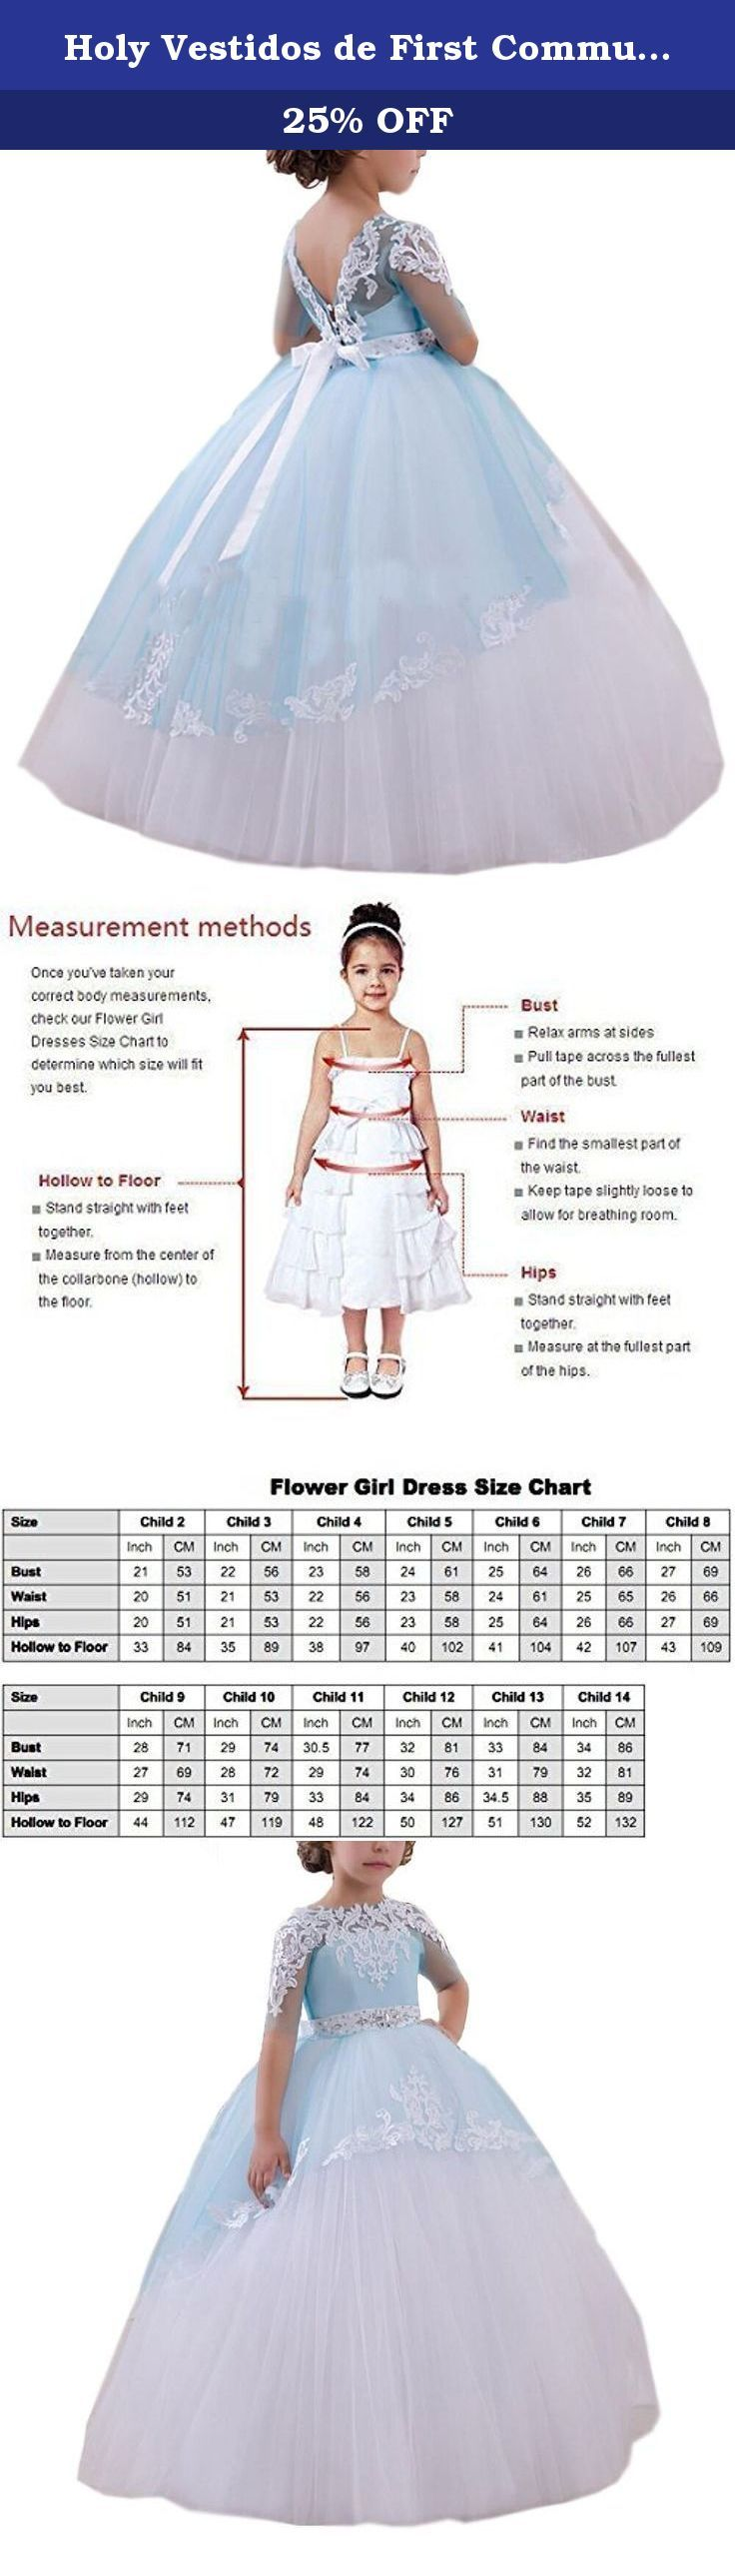 Holy Vestidos de First Communion Dresses White Blue Girls 1-14 Year Old (Size 2). Brand Name: Carat Occasion: First communin,wedding,birthday,Christmas,pageantetc Shown Color: White and blue Item Type: First communion dresses,girls dresses,Flower girl dress, tulle ball gowns,pageant gown etc Sleeve Length: Half sleeves Decoration: Beading,lace appliques Waistline: Natural Dresses Length: Floor-length Fabric: Soft Mesh Tulle,lace,satin Season: Spring, Summer, Fall,Winter OEM Service…